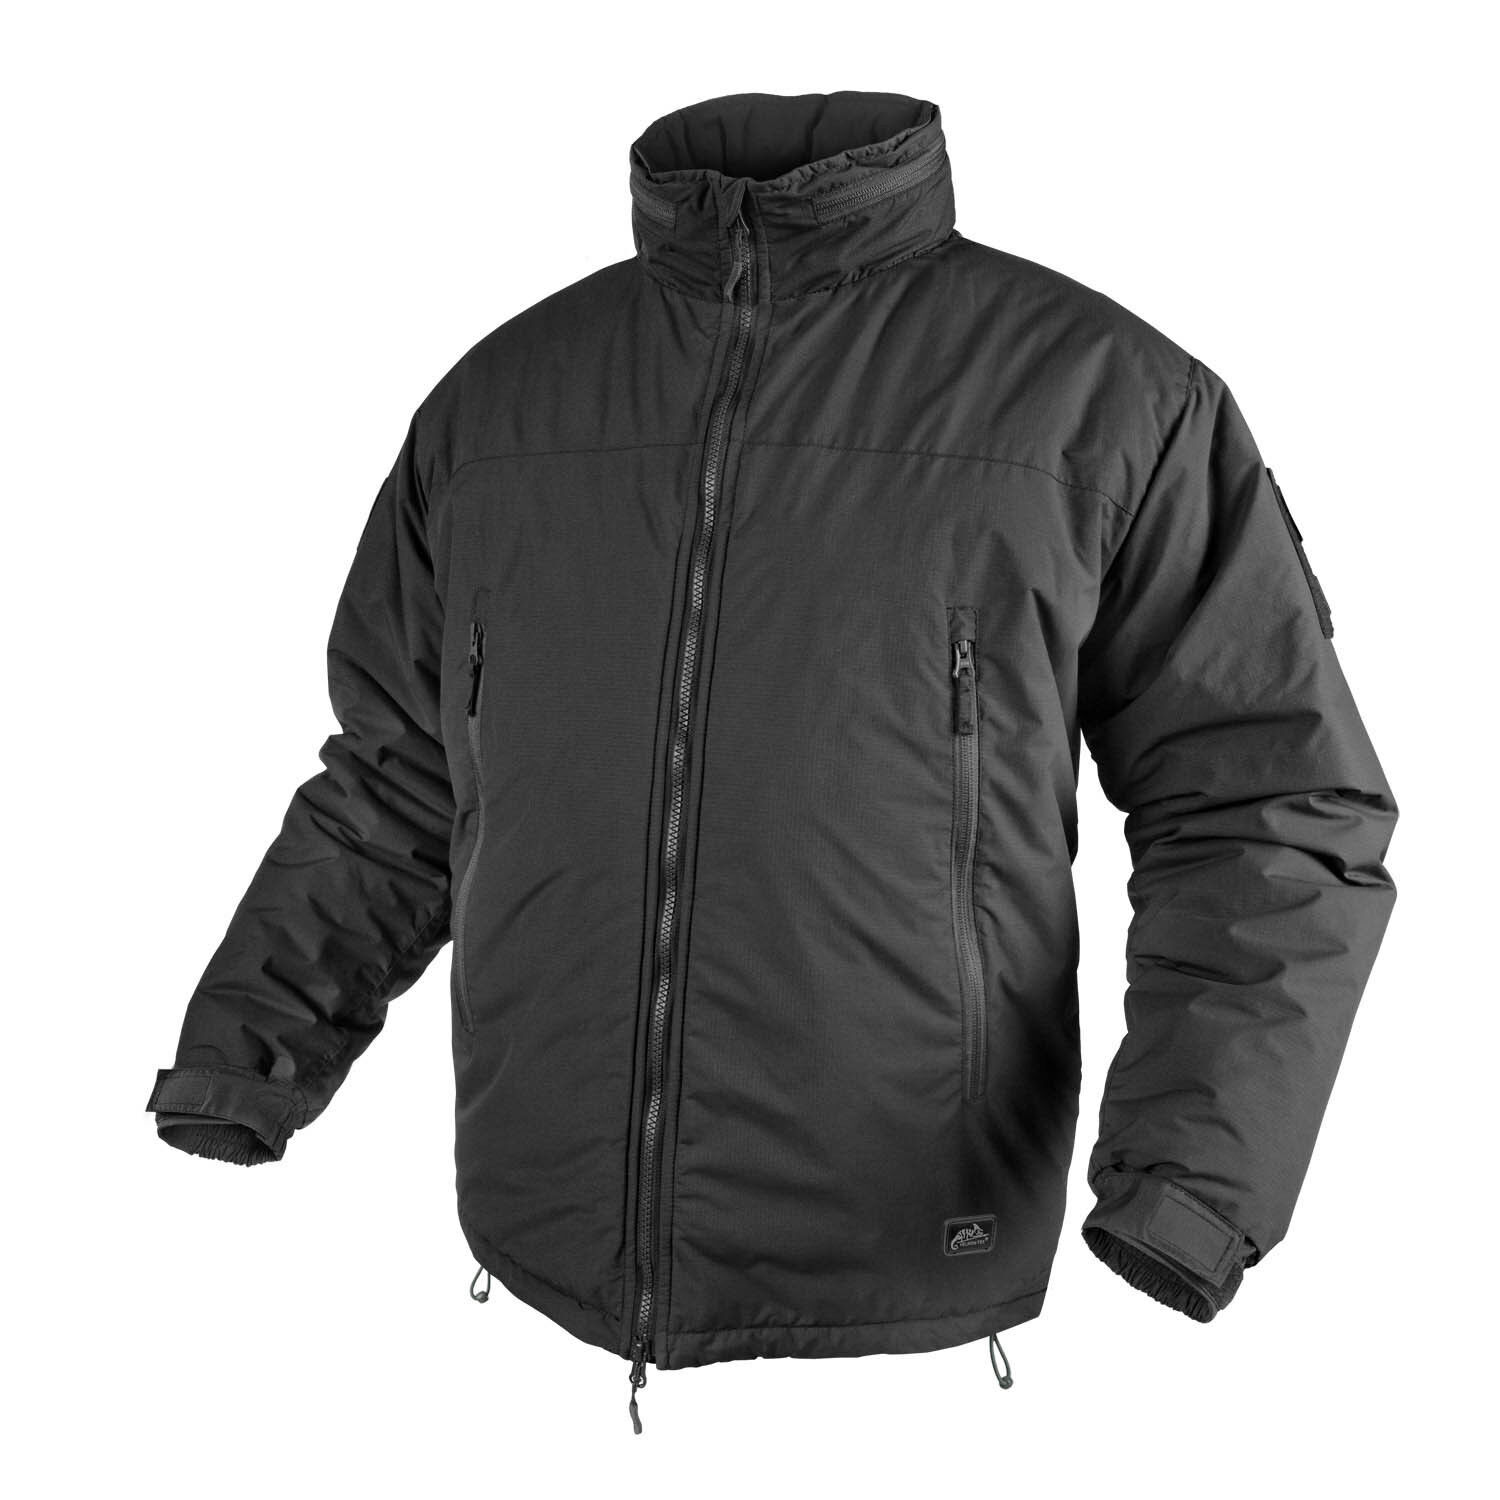 Helikon Tex Apex Climashield level 7 Giacca Giacca Invernale Outdoor Nero XL XLARGE